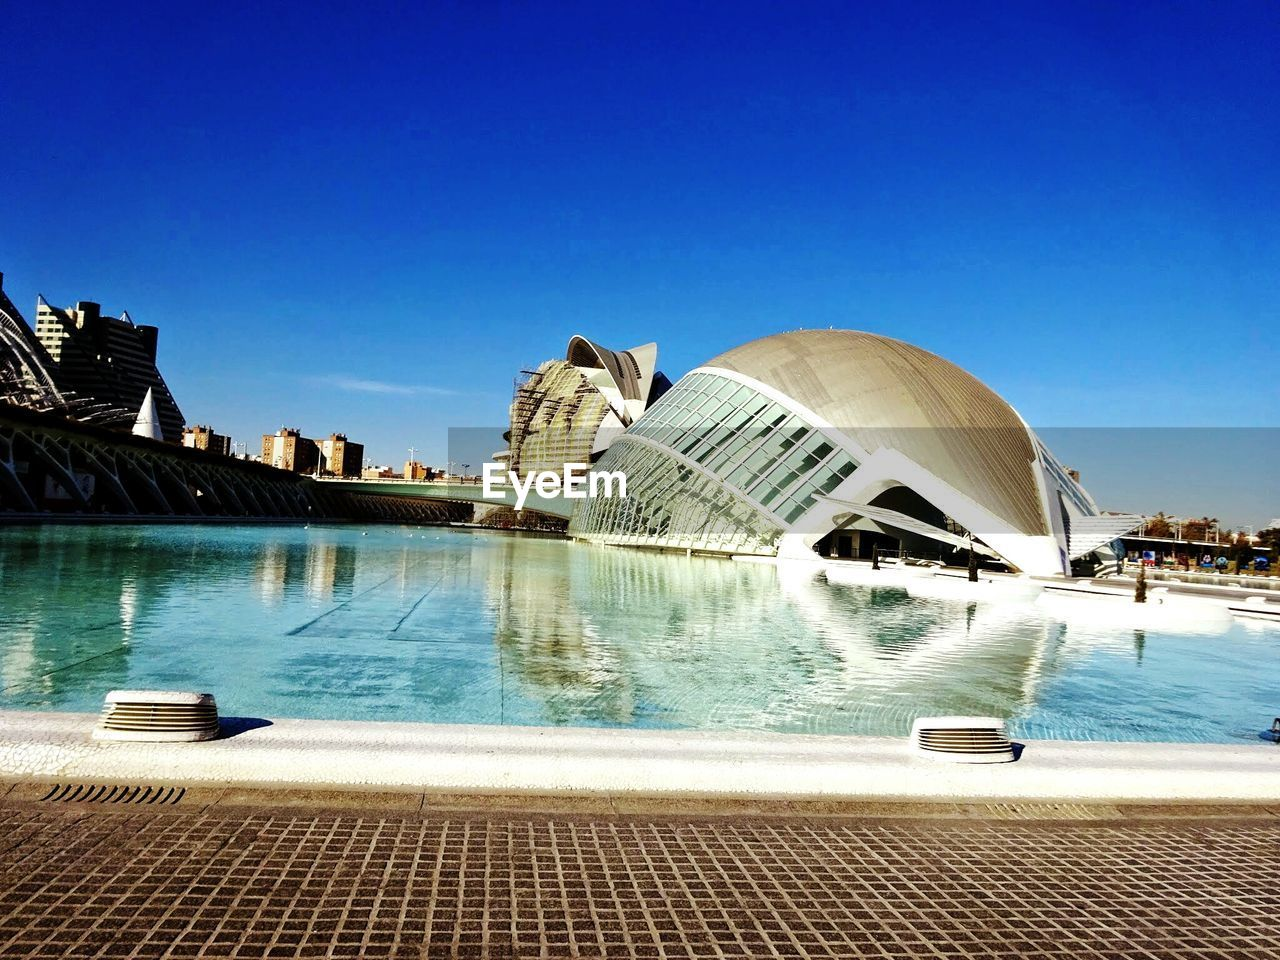 water, architecture, travel destinations, built structure, building exterior, swimming pool, tourism, outdoors, travel, blue, vacations, day, sculpture, no people, city, concert hall, sky